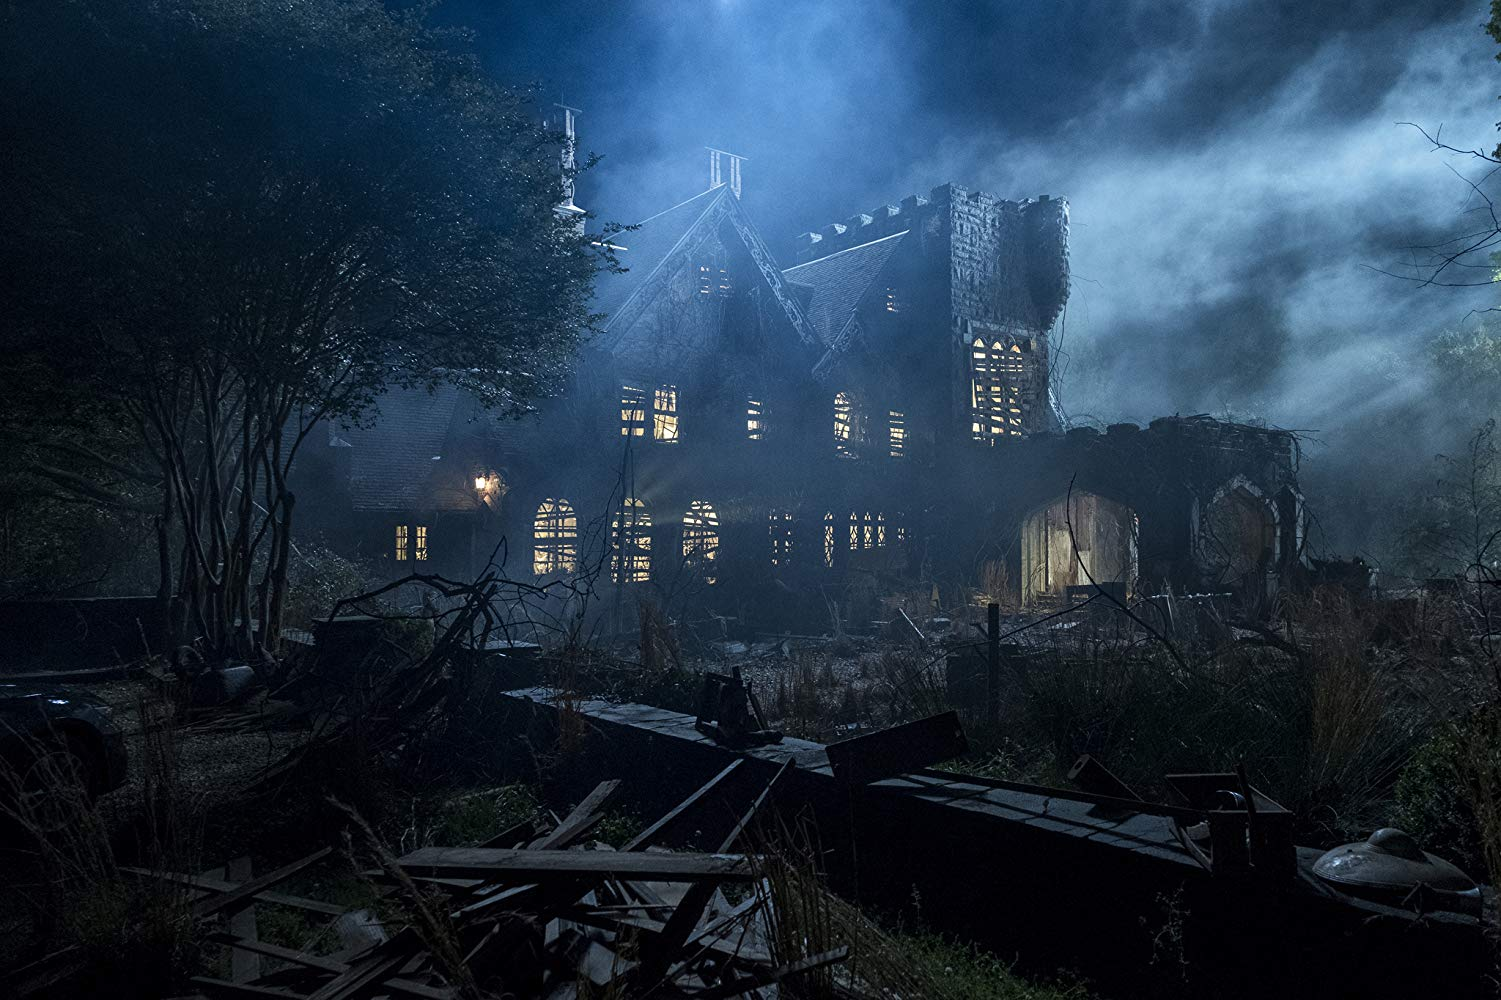 More of a manor than a house, but you get the idea. Image from IMDB.